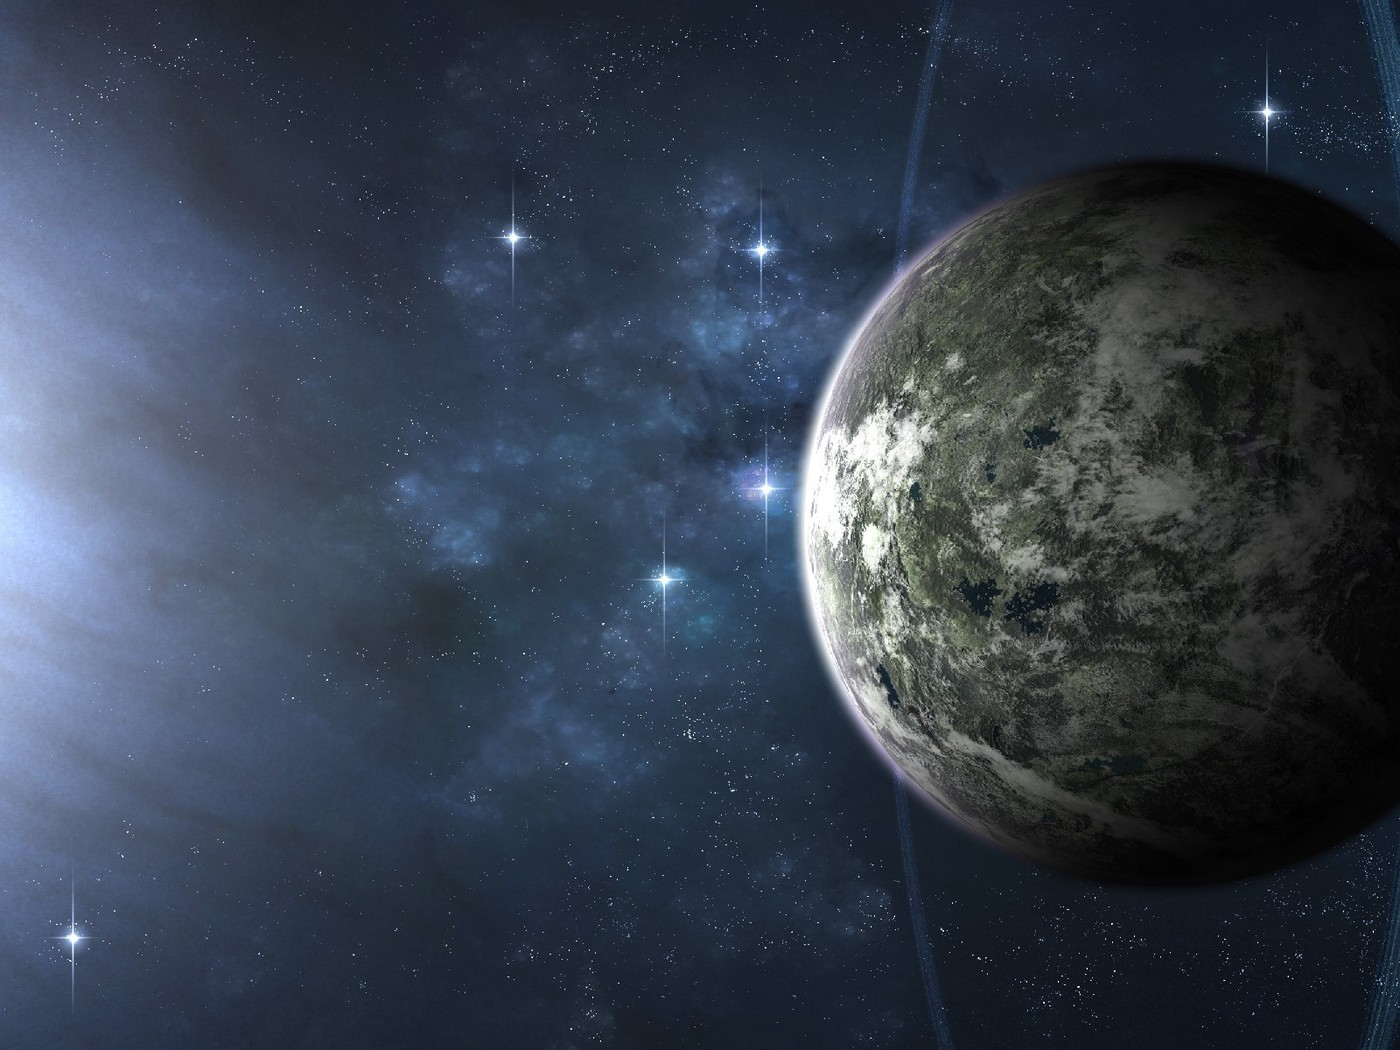 Outer space planets science fiction wallpaper for Outer space planets